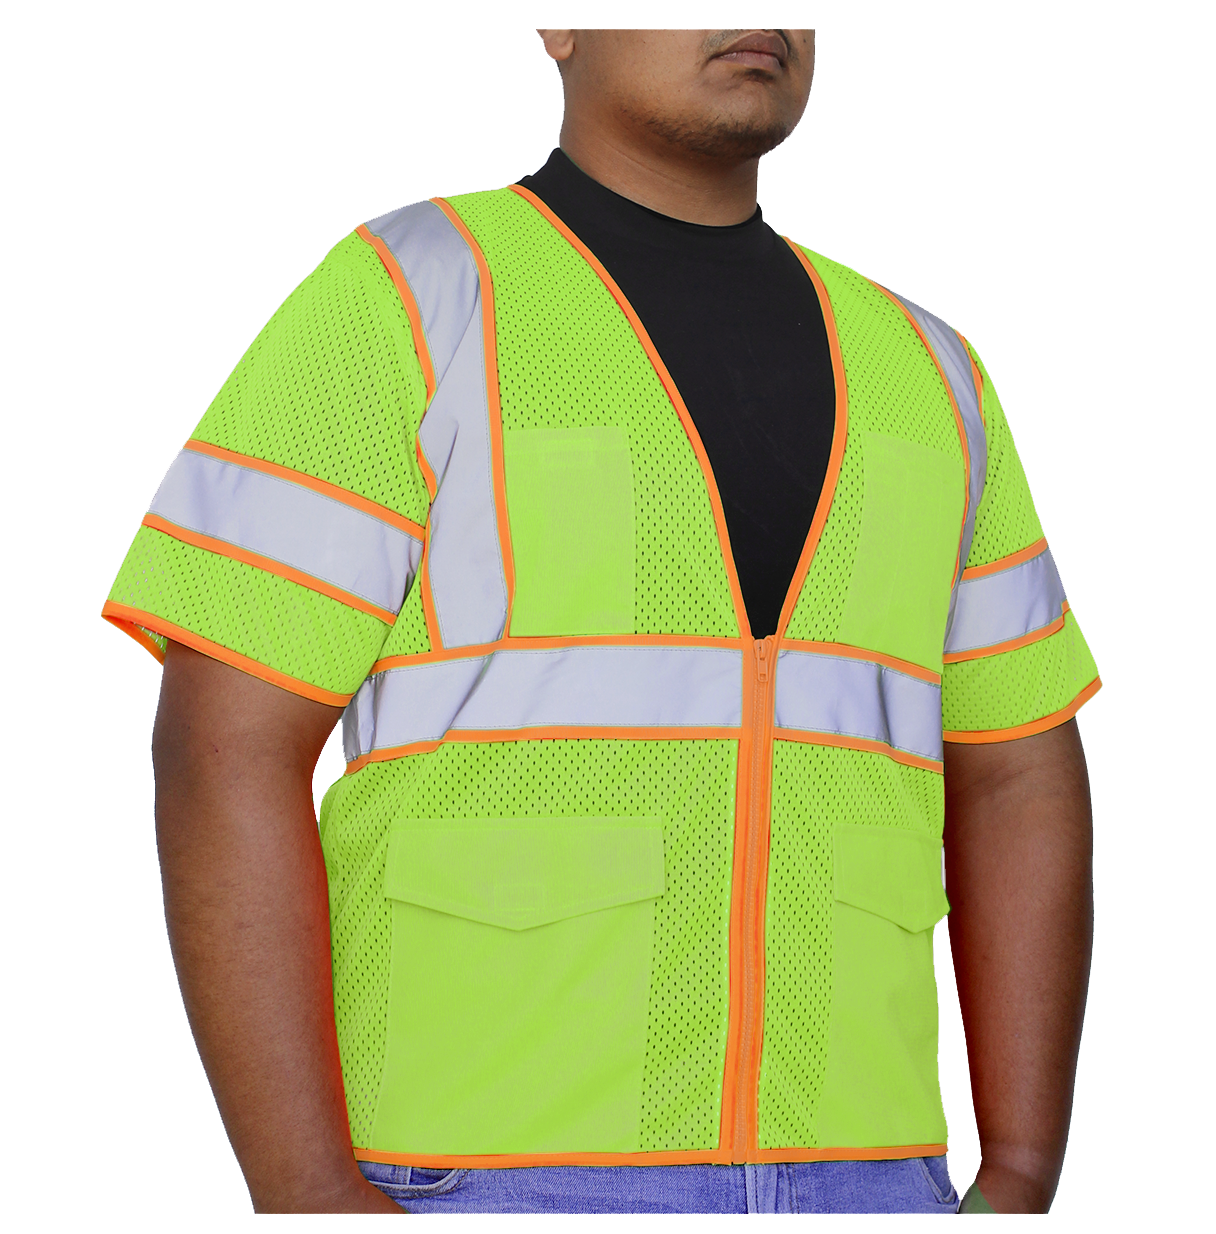 Glow Shield Class-3 Two-toned Safety Vest with Sleeves